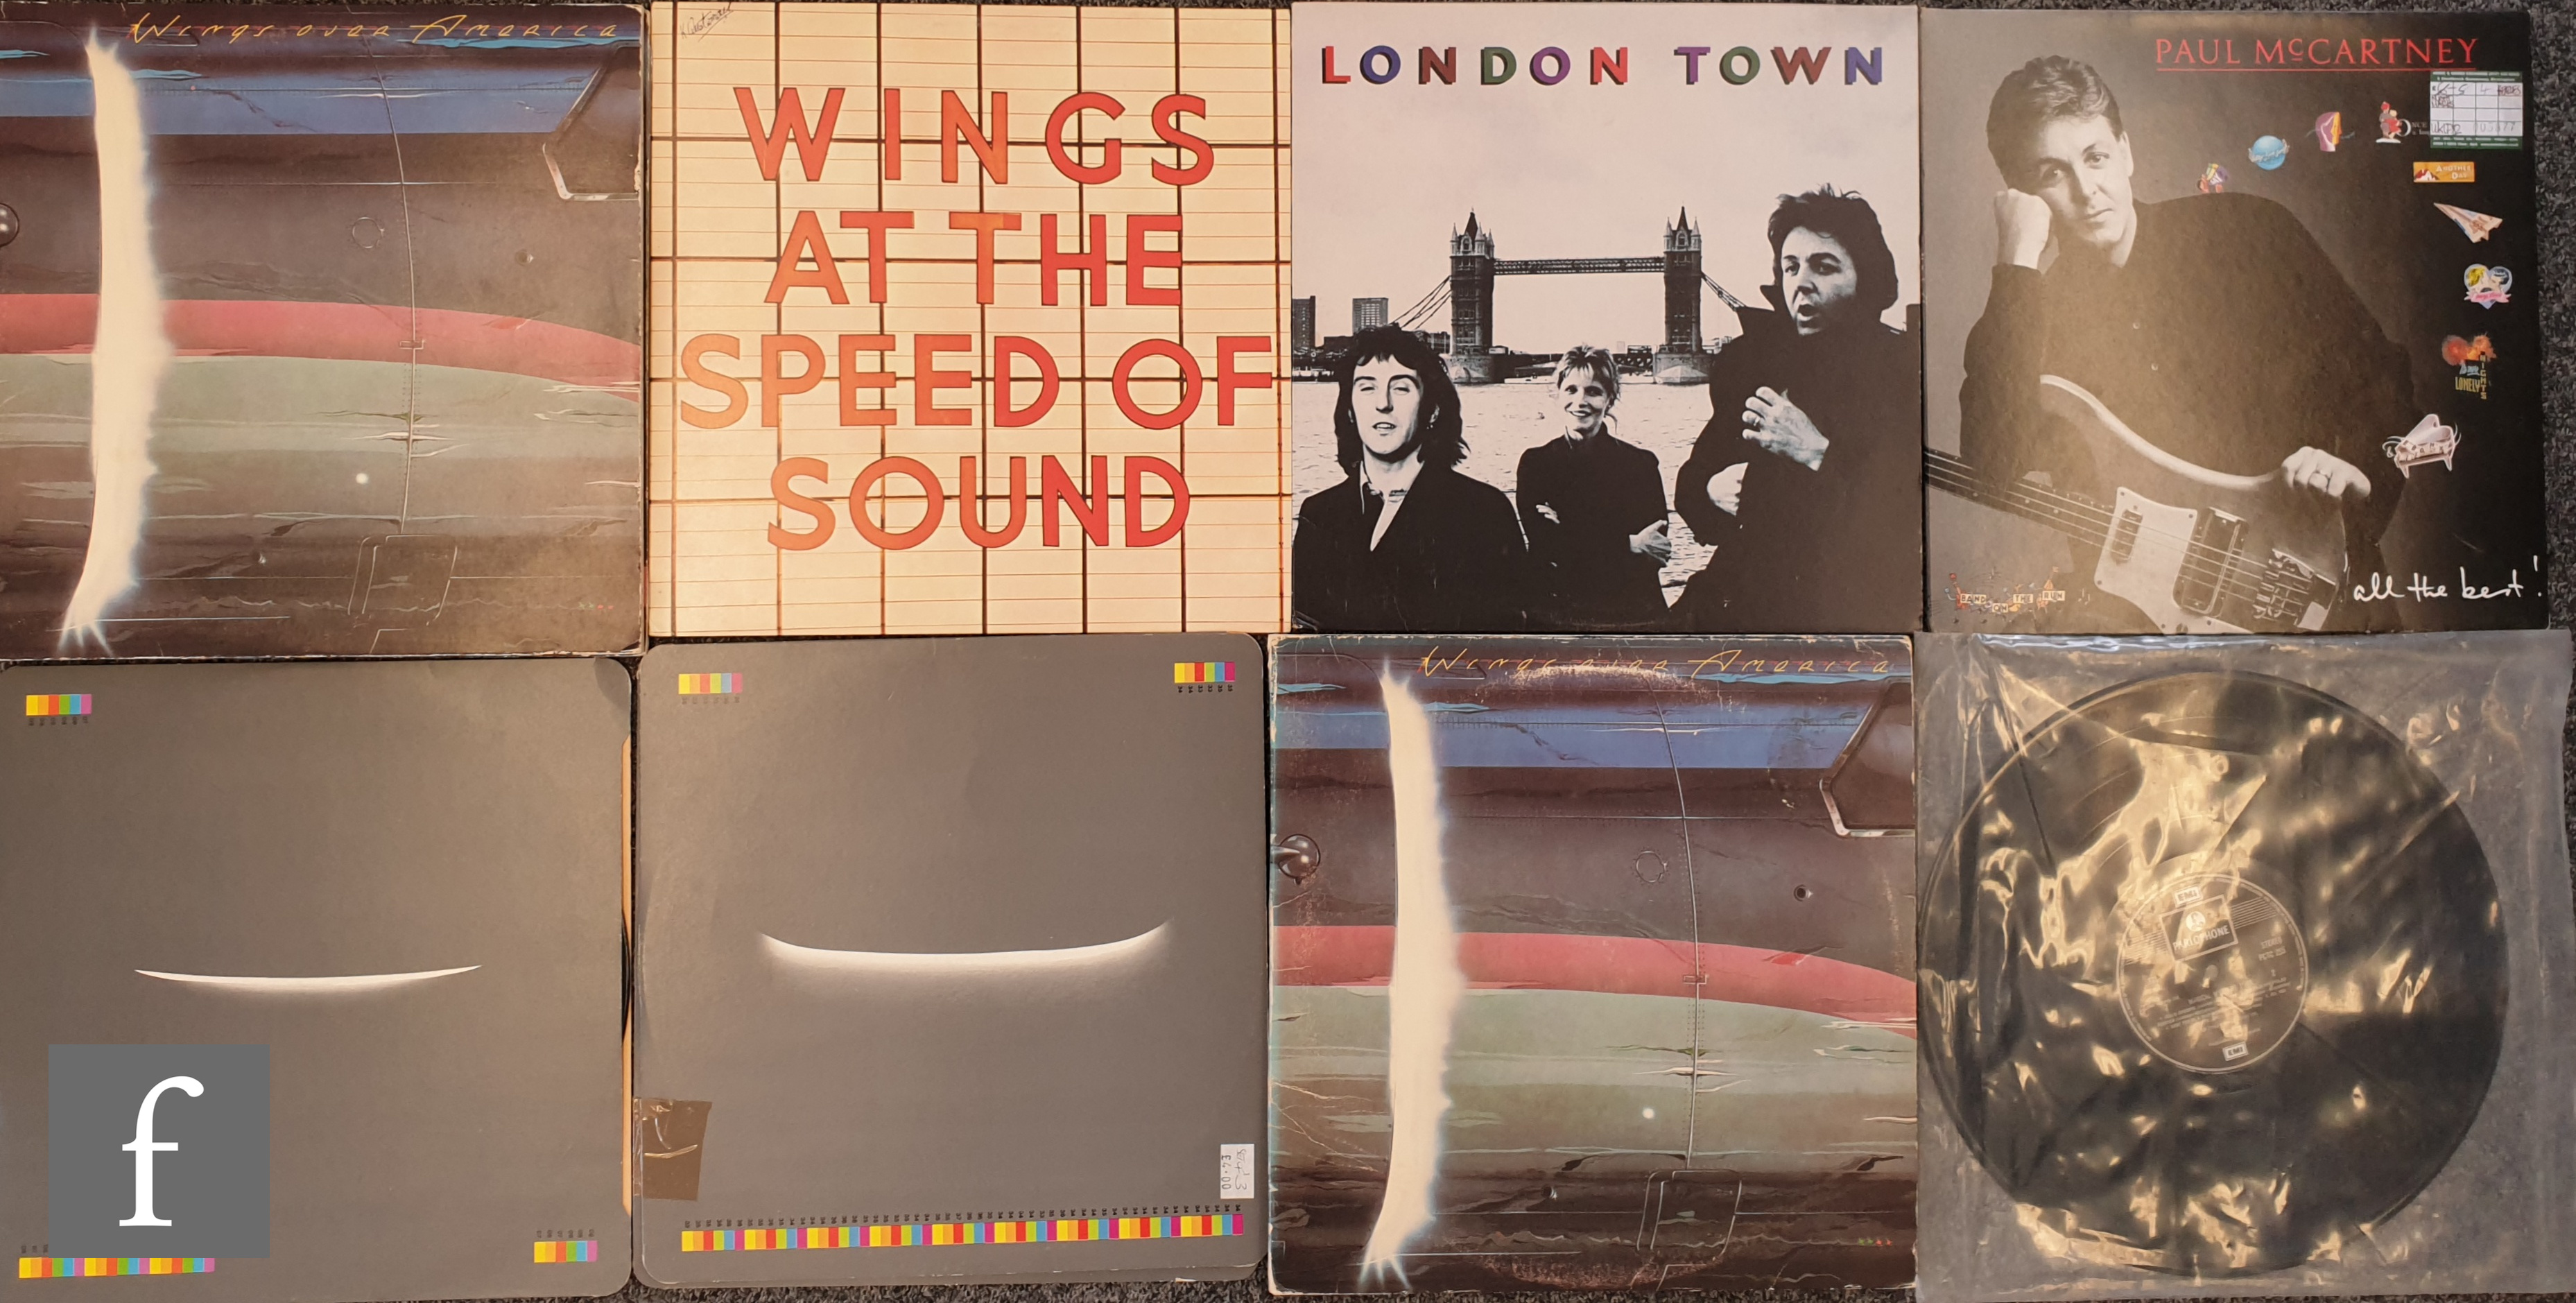 A collection of mixed genre LPs to include Paul McCartney and Wings, Wings Over America, London